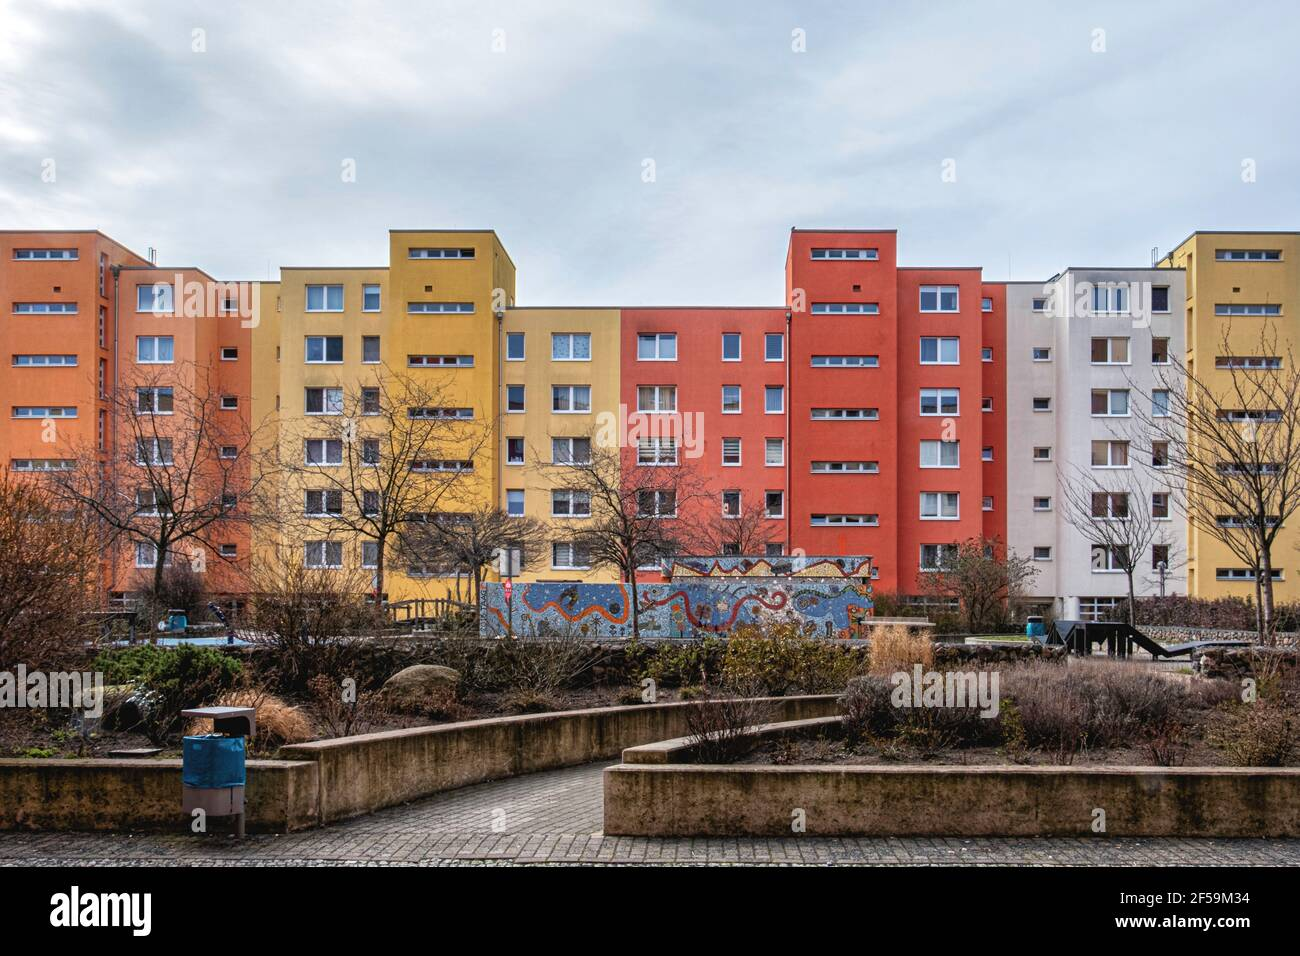 Colourful social housing apartment buildings with garden and mosaic in Graunstrasse, Gesundbrunnen, Berlin Stock Photo